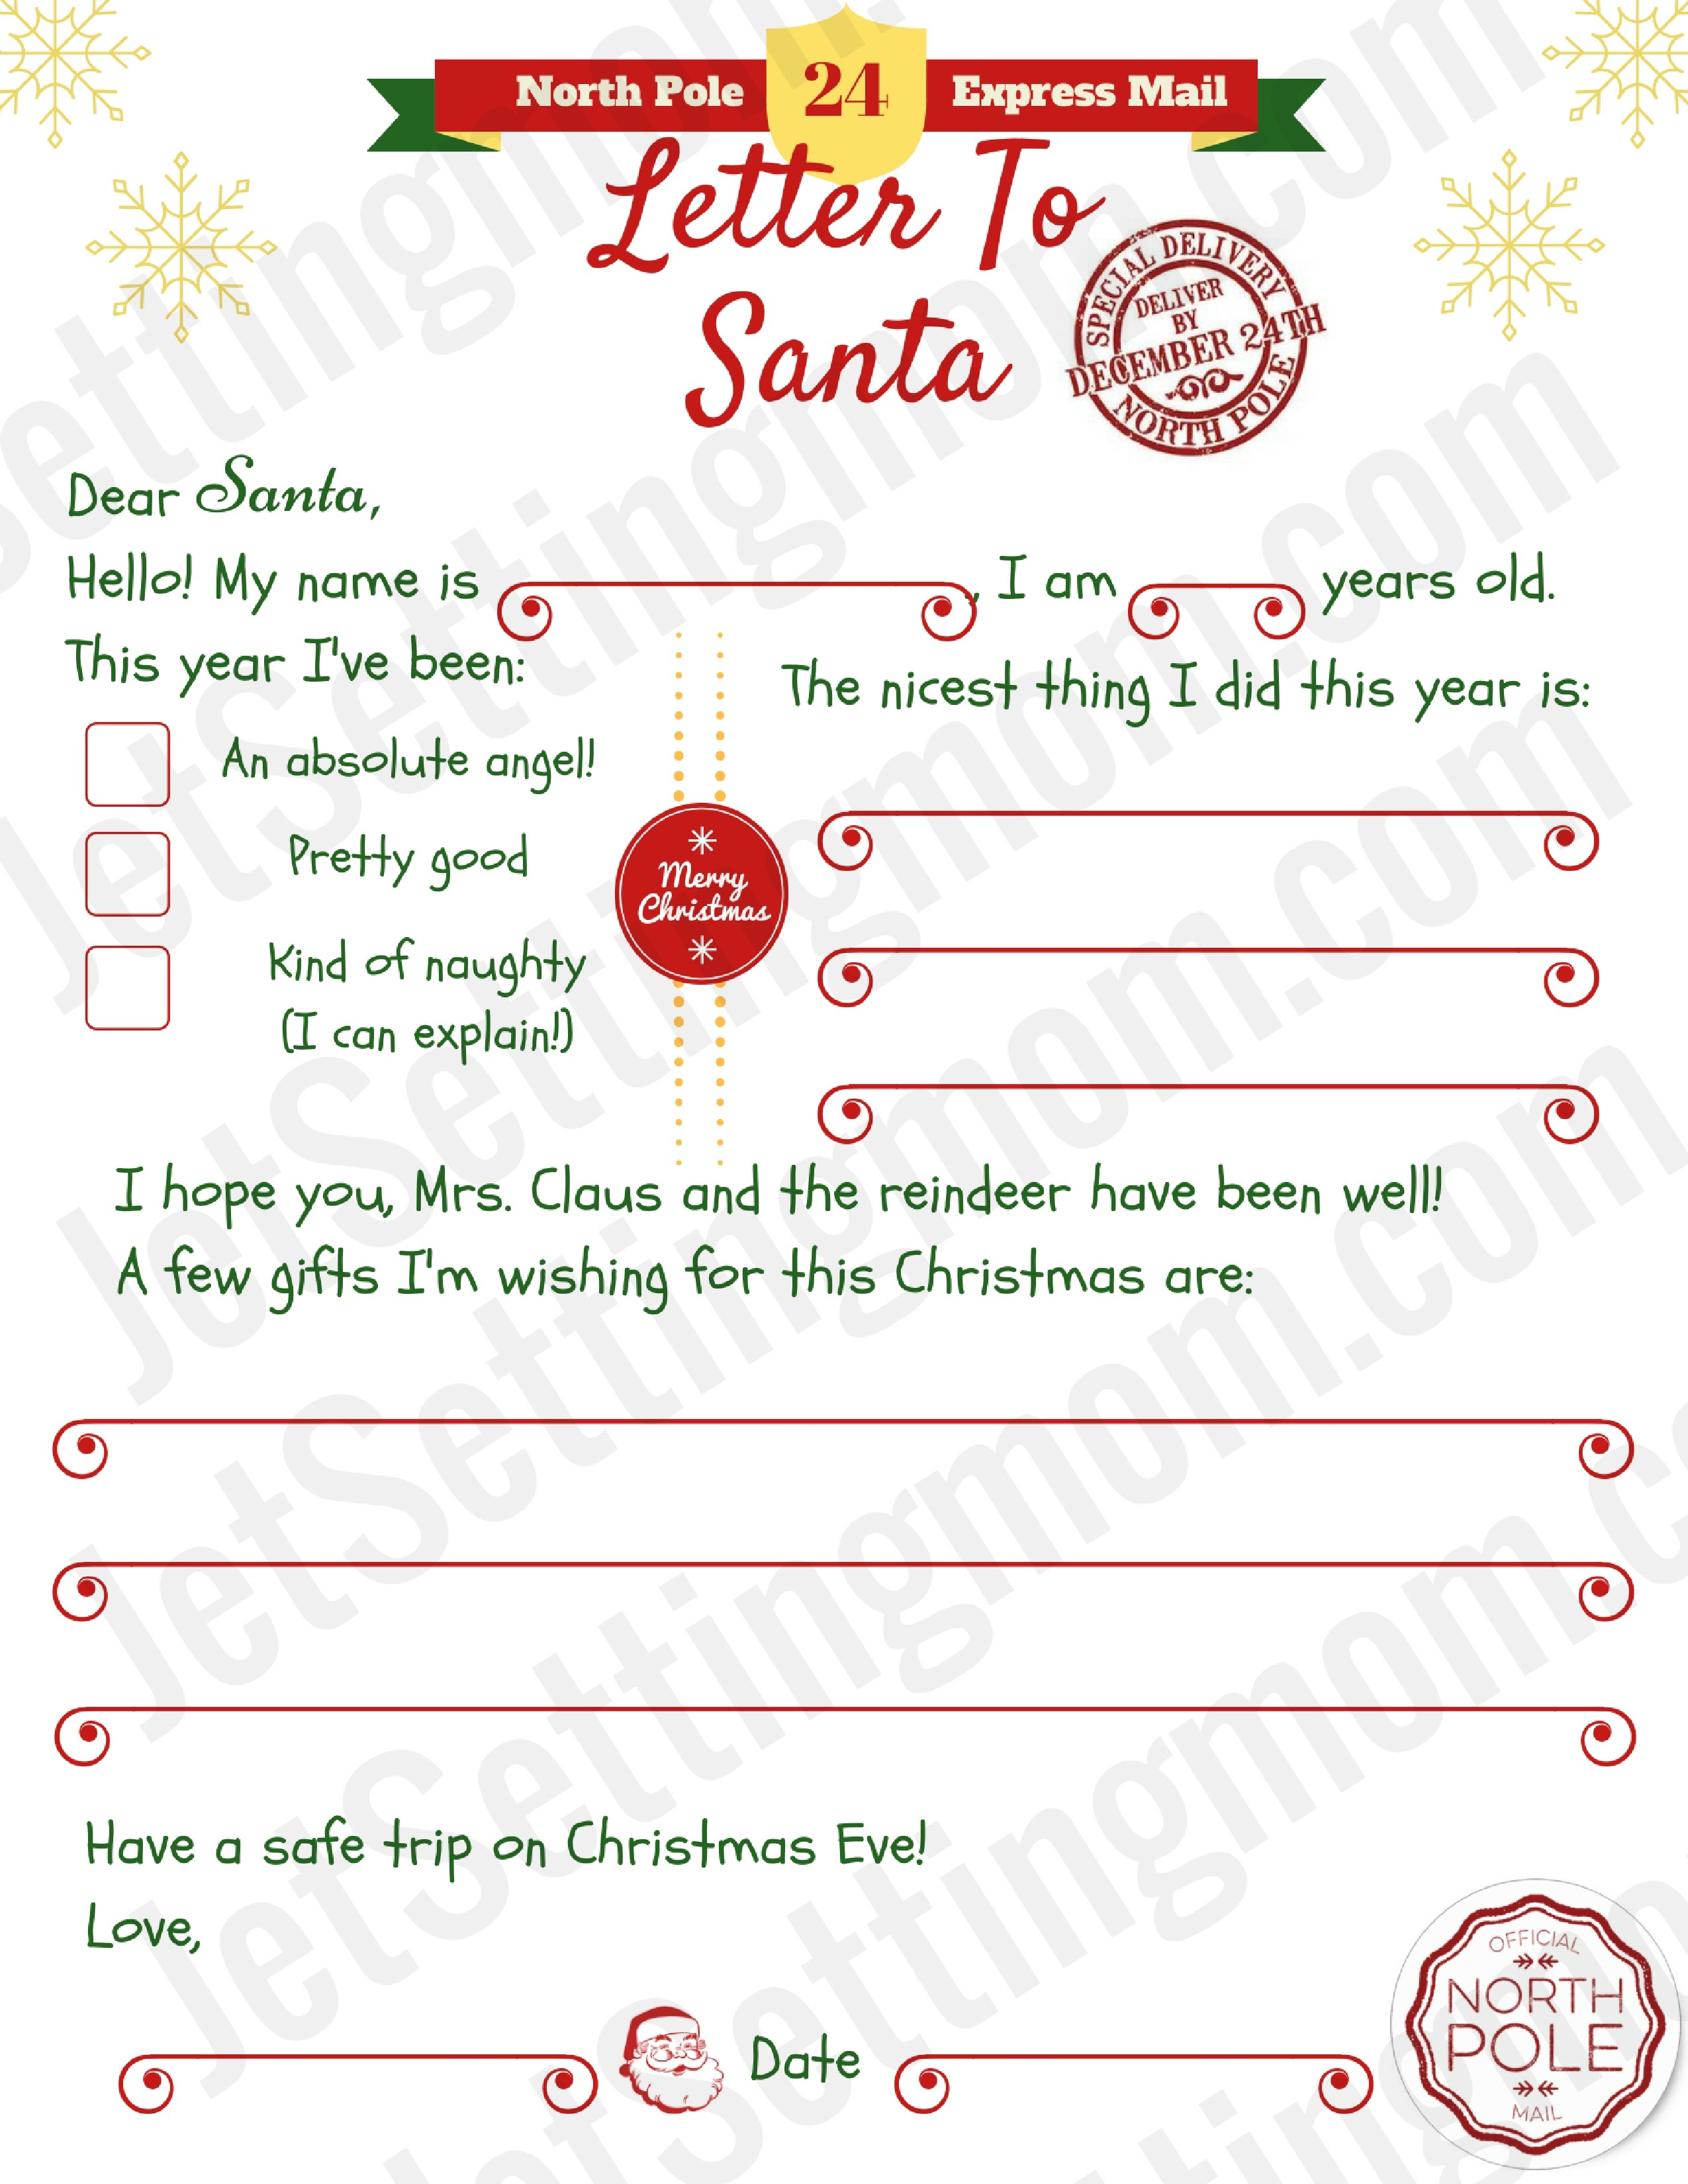 Dear Santa Letter Template Printable Best Printable Letter To Santa - Free Printable Letter From Santa Template